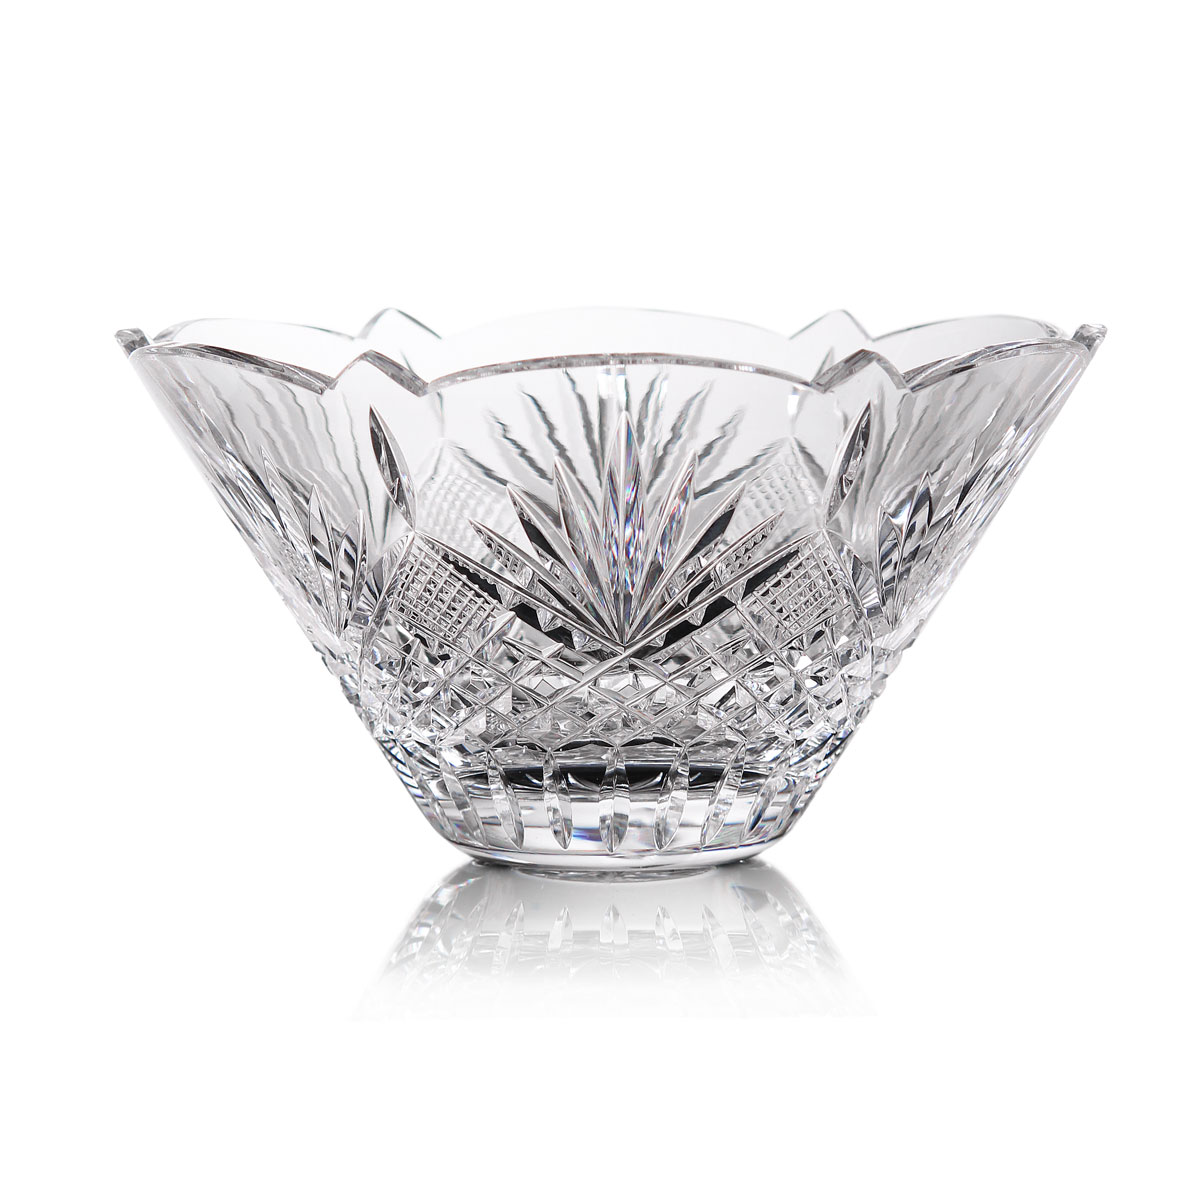 Cashs Ireland, Art Collection, Trellis Crystal Bowl